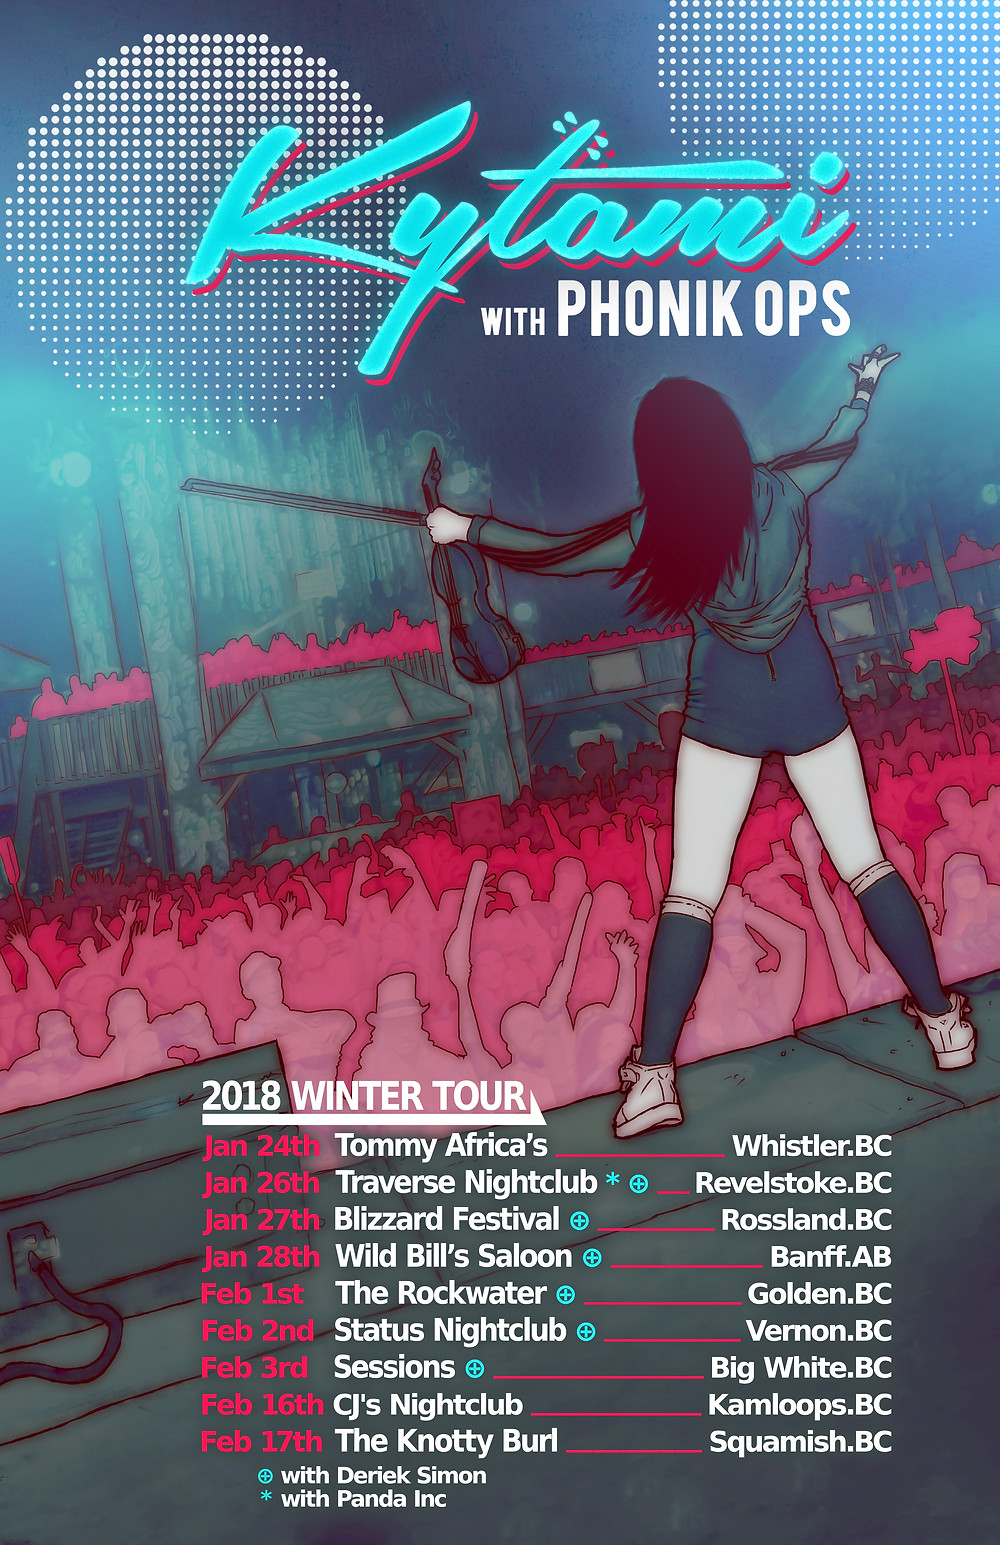 2018 Winter Tour with Phonik Ops